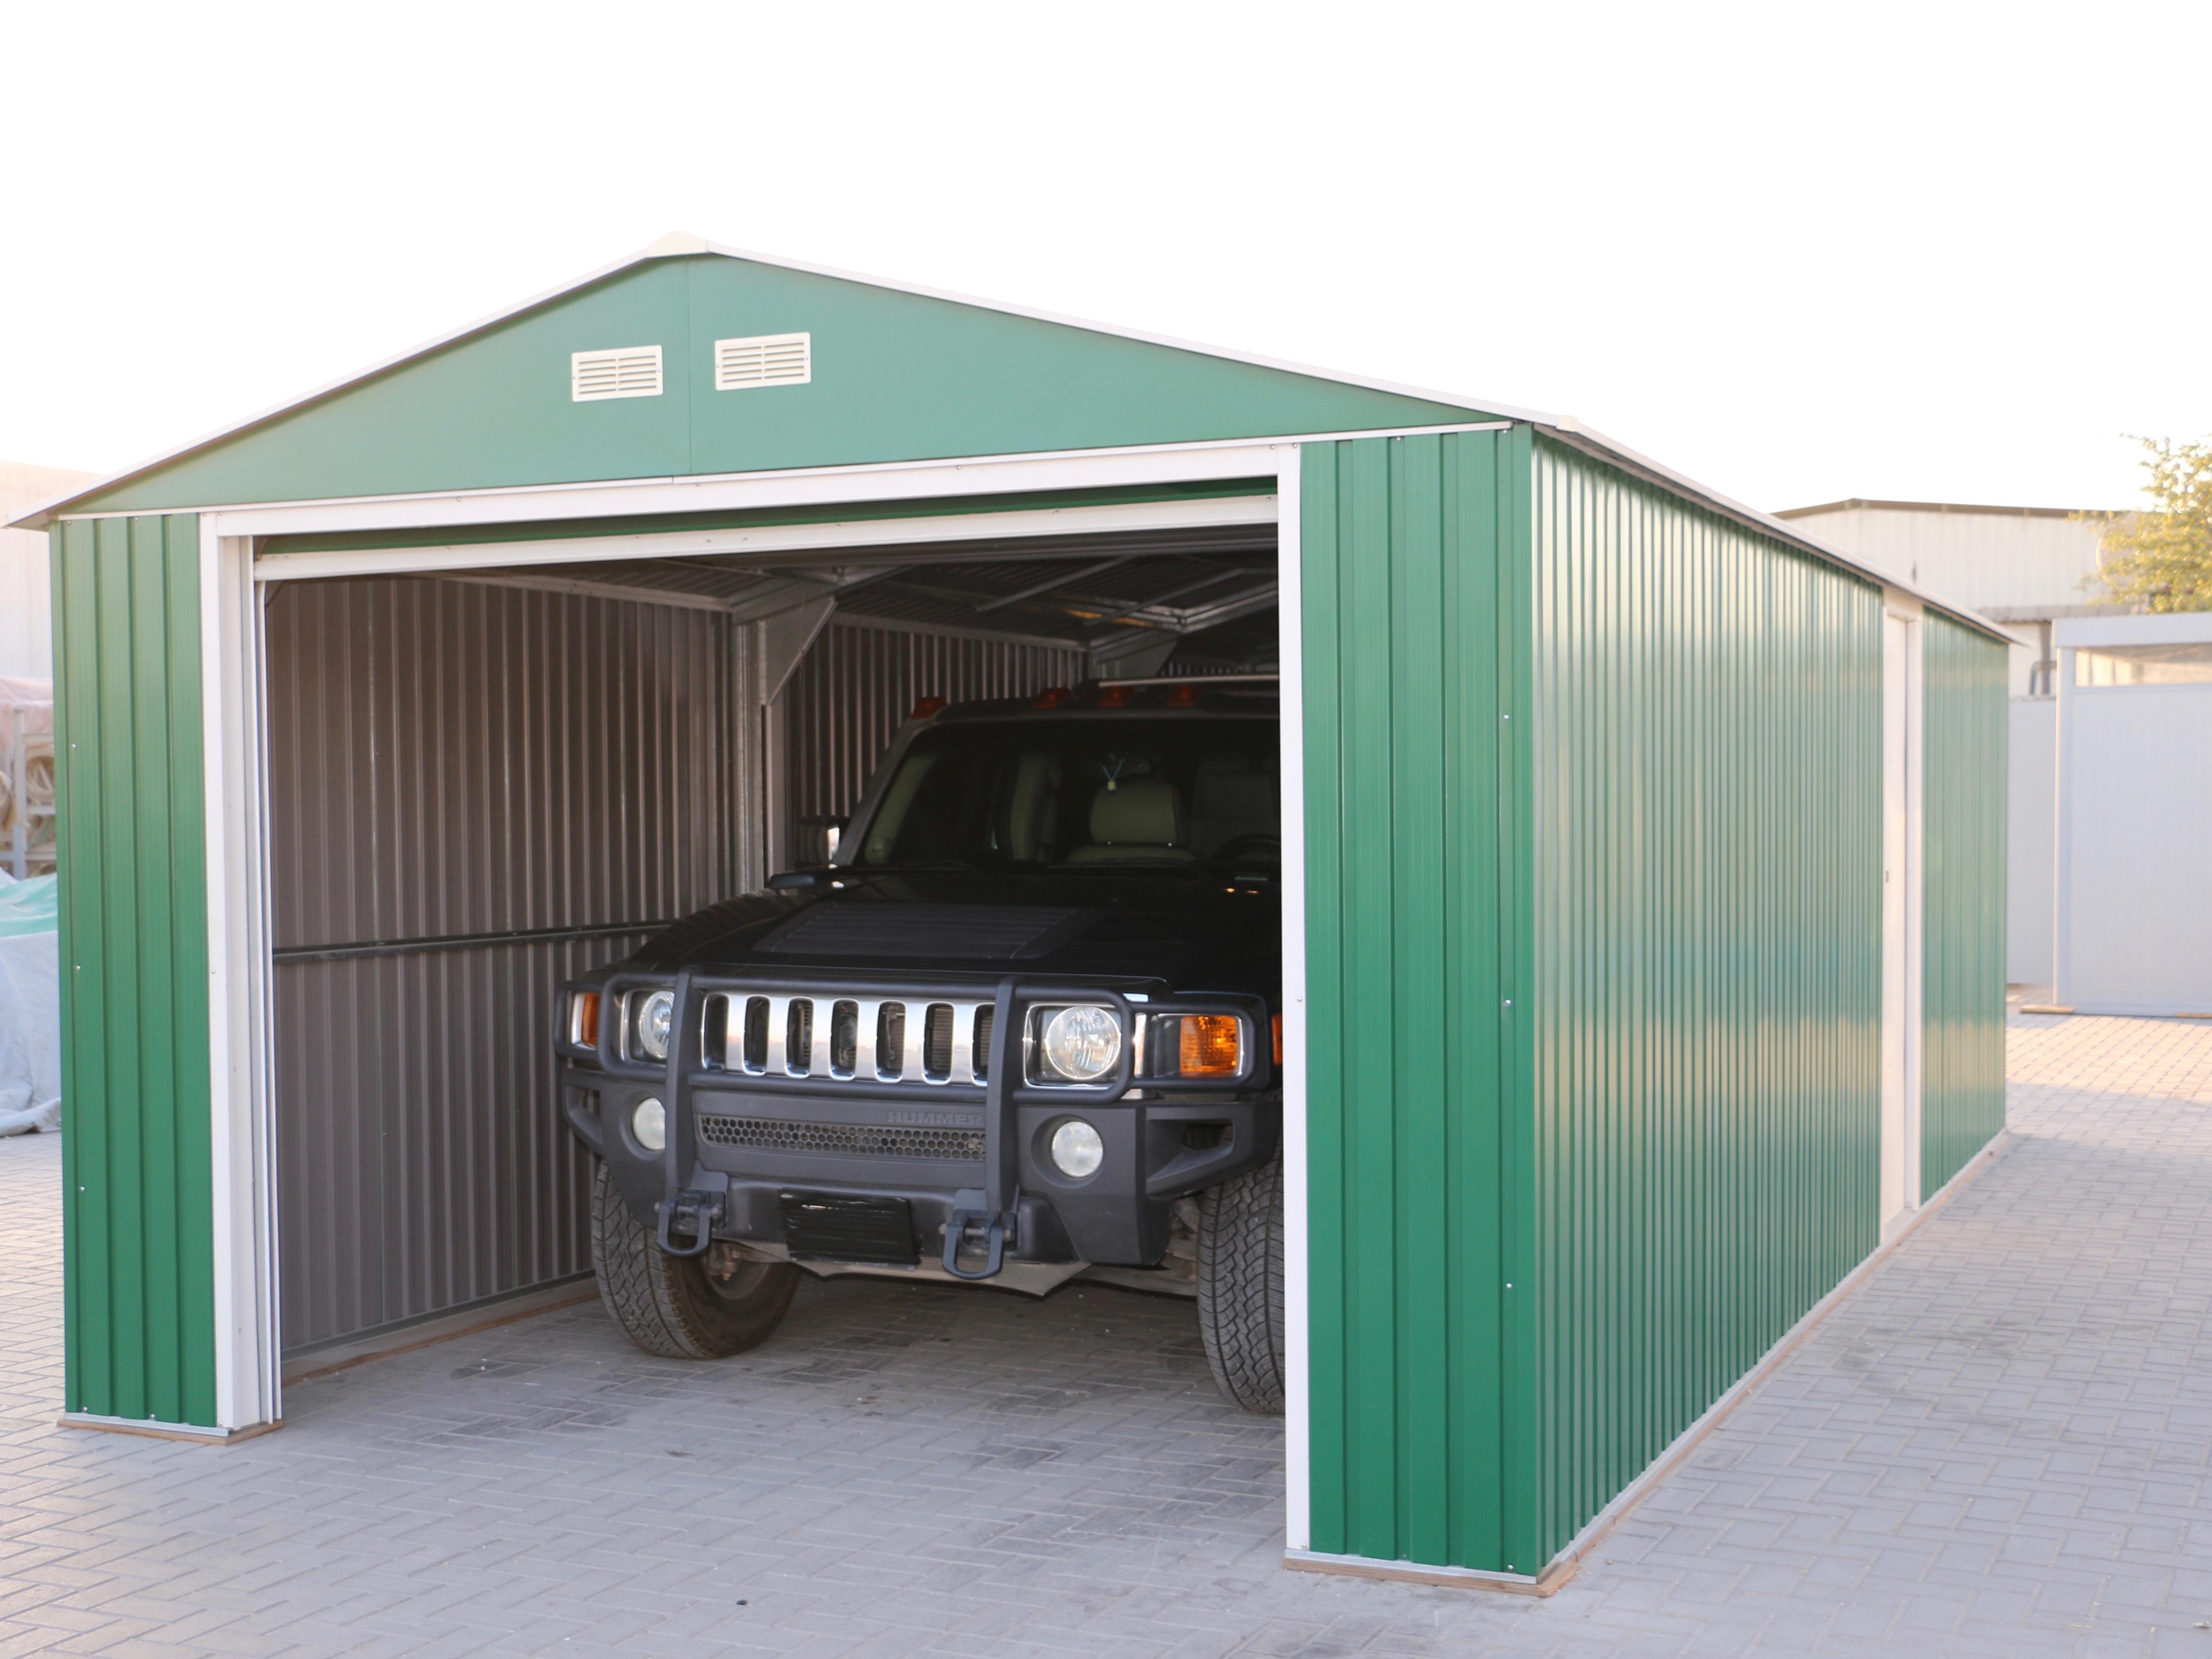 Lifetime Picnic Tables Home > Sheds > Duramax Sheds > 50961 Duramax Imperial Metal Garage ...